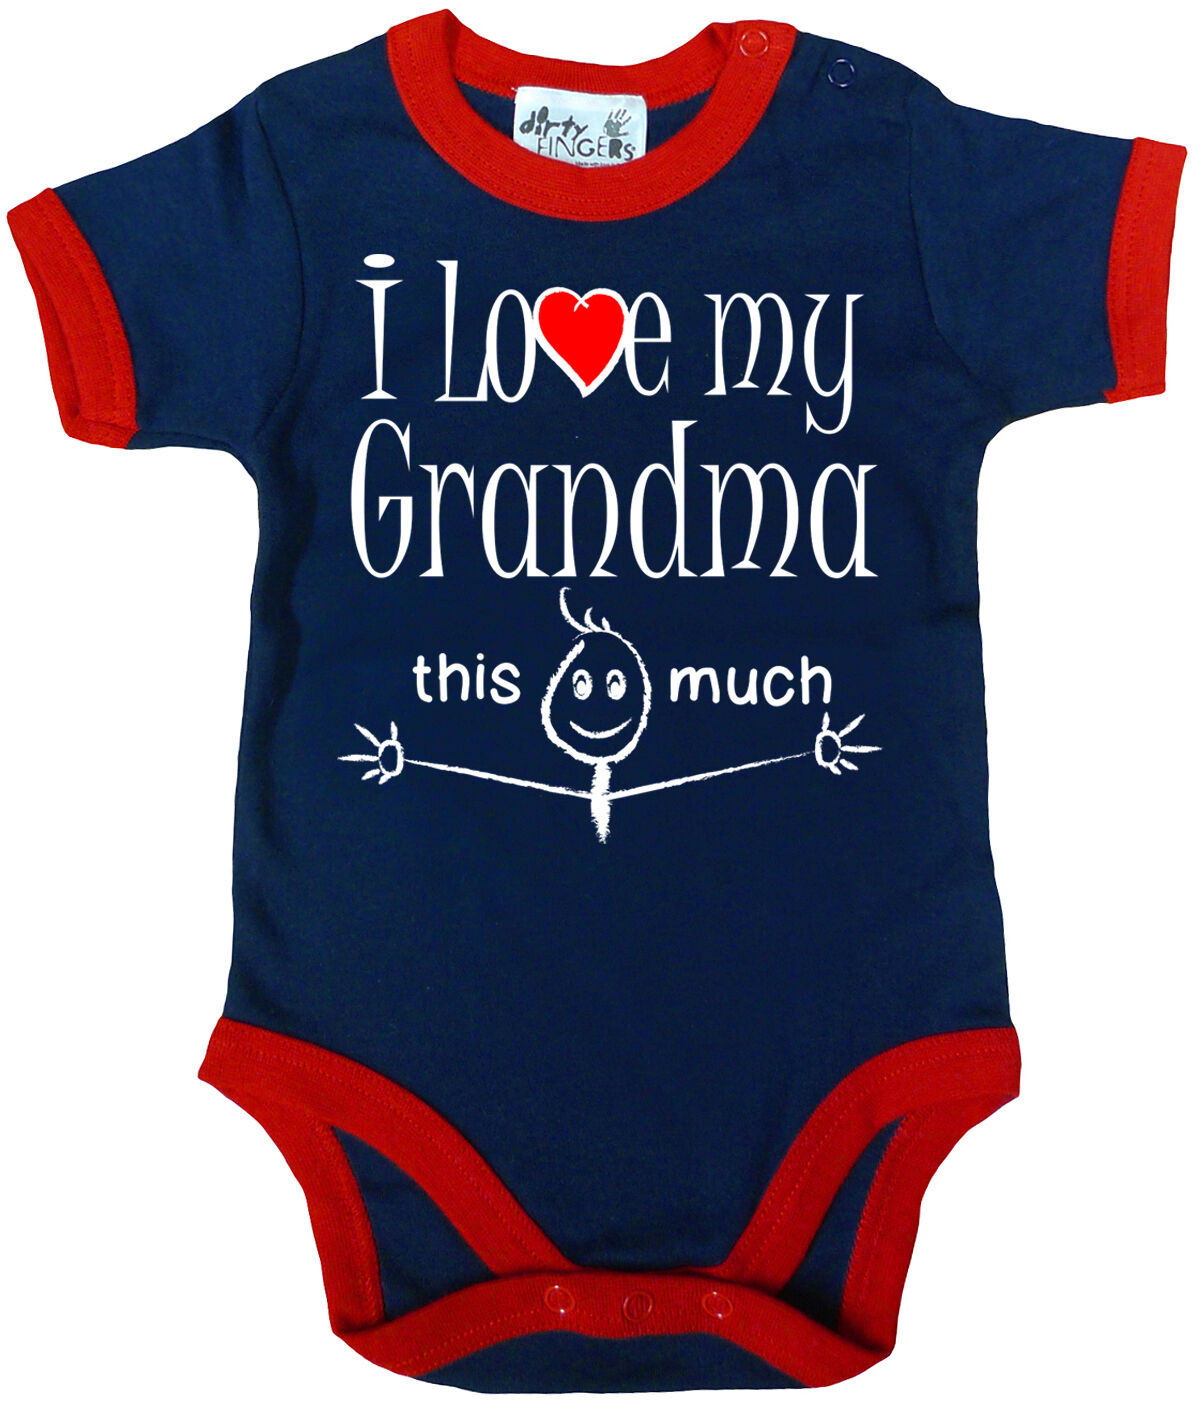 """Funny Baby Bodysuit /""""I Love My Grandma this Much/"""" Trimmed Babygrow Granny Gift"""